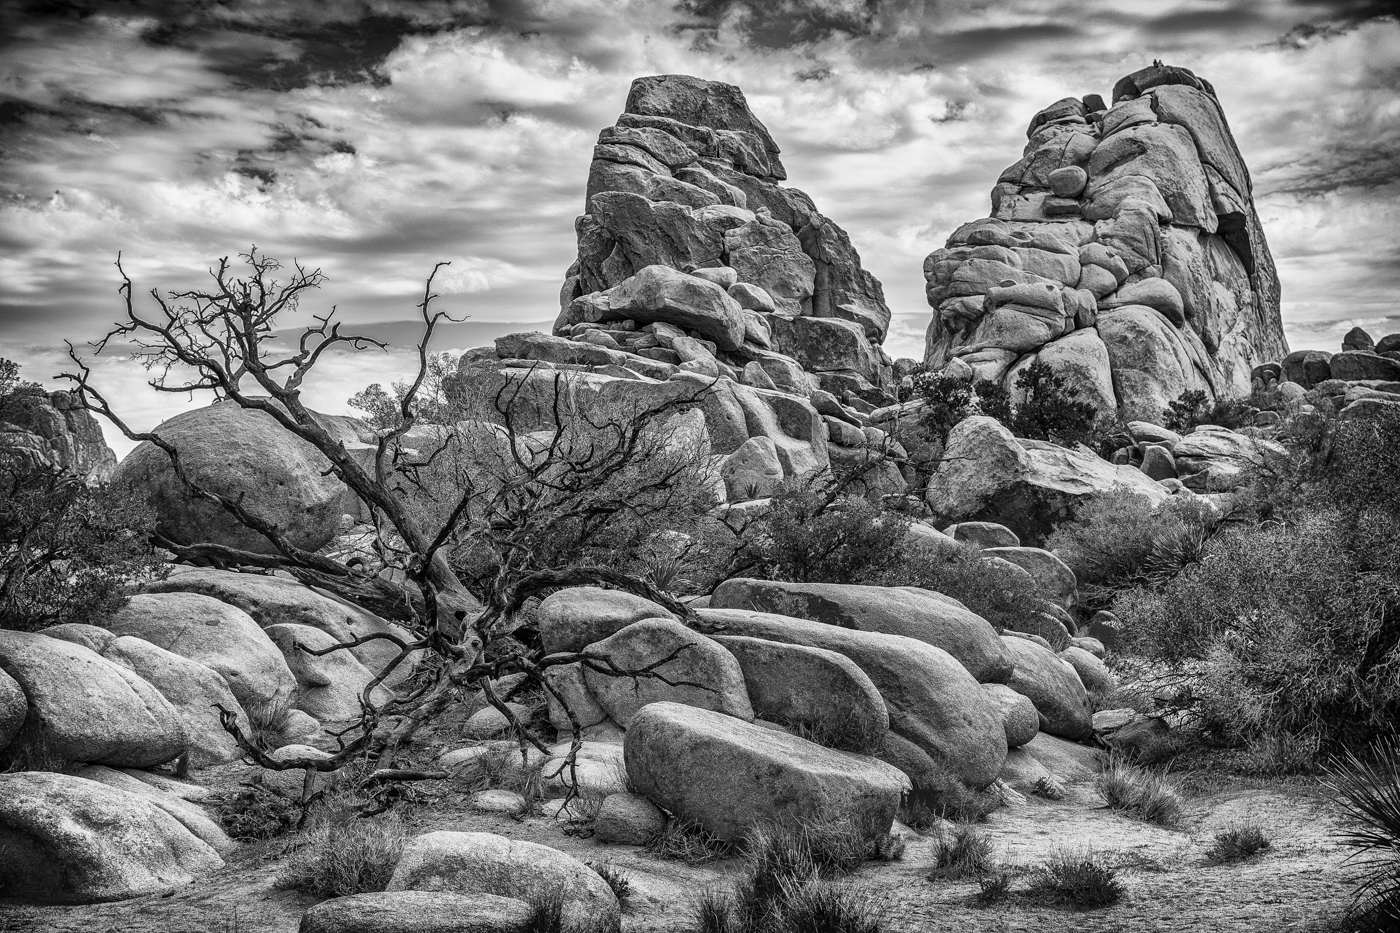 First 'In Joshua Tree National Park' by Mike Brown